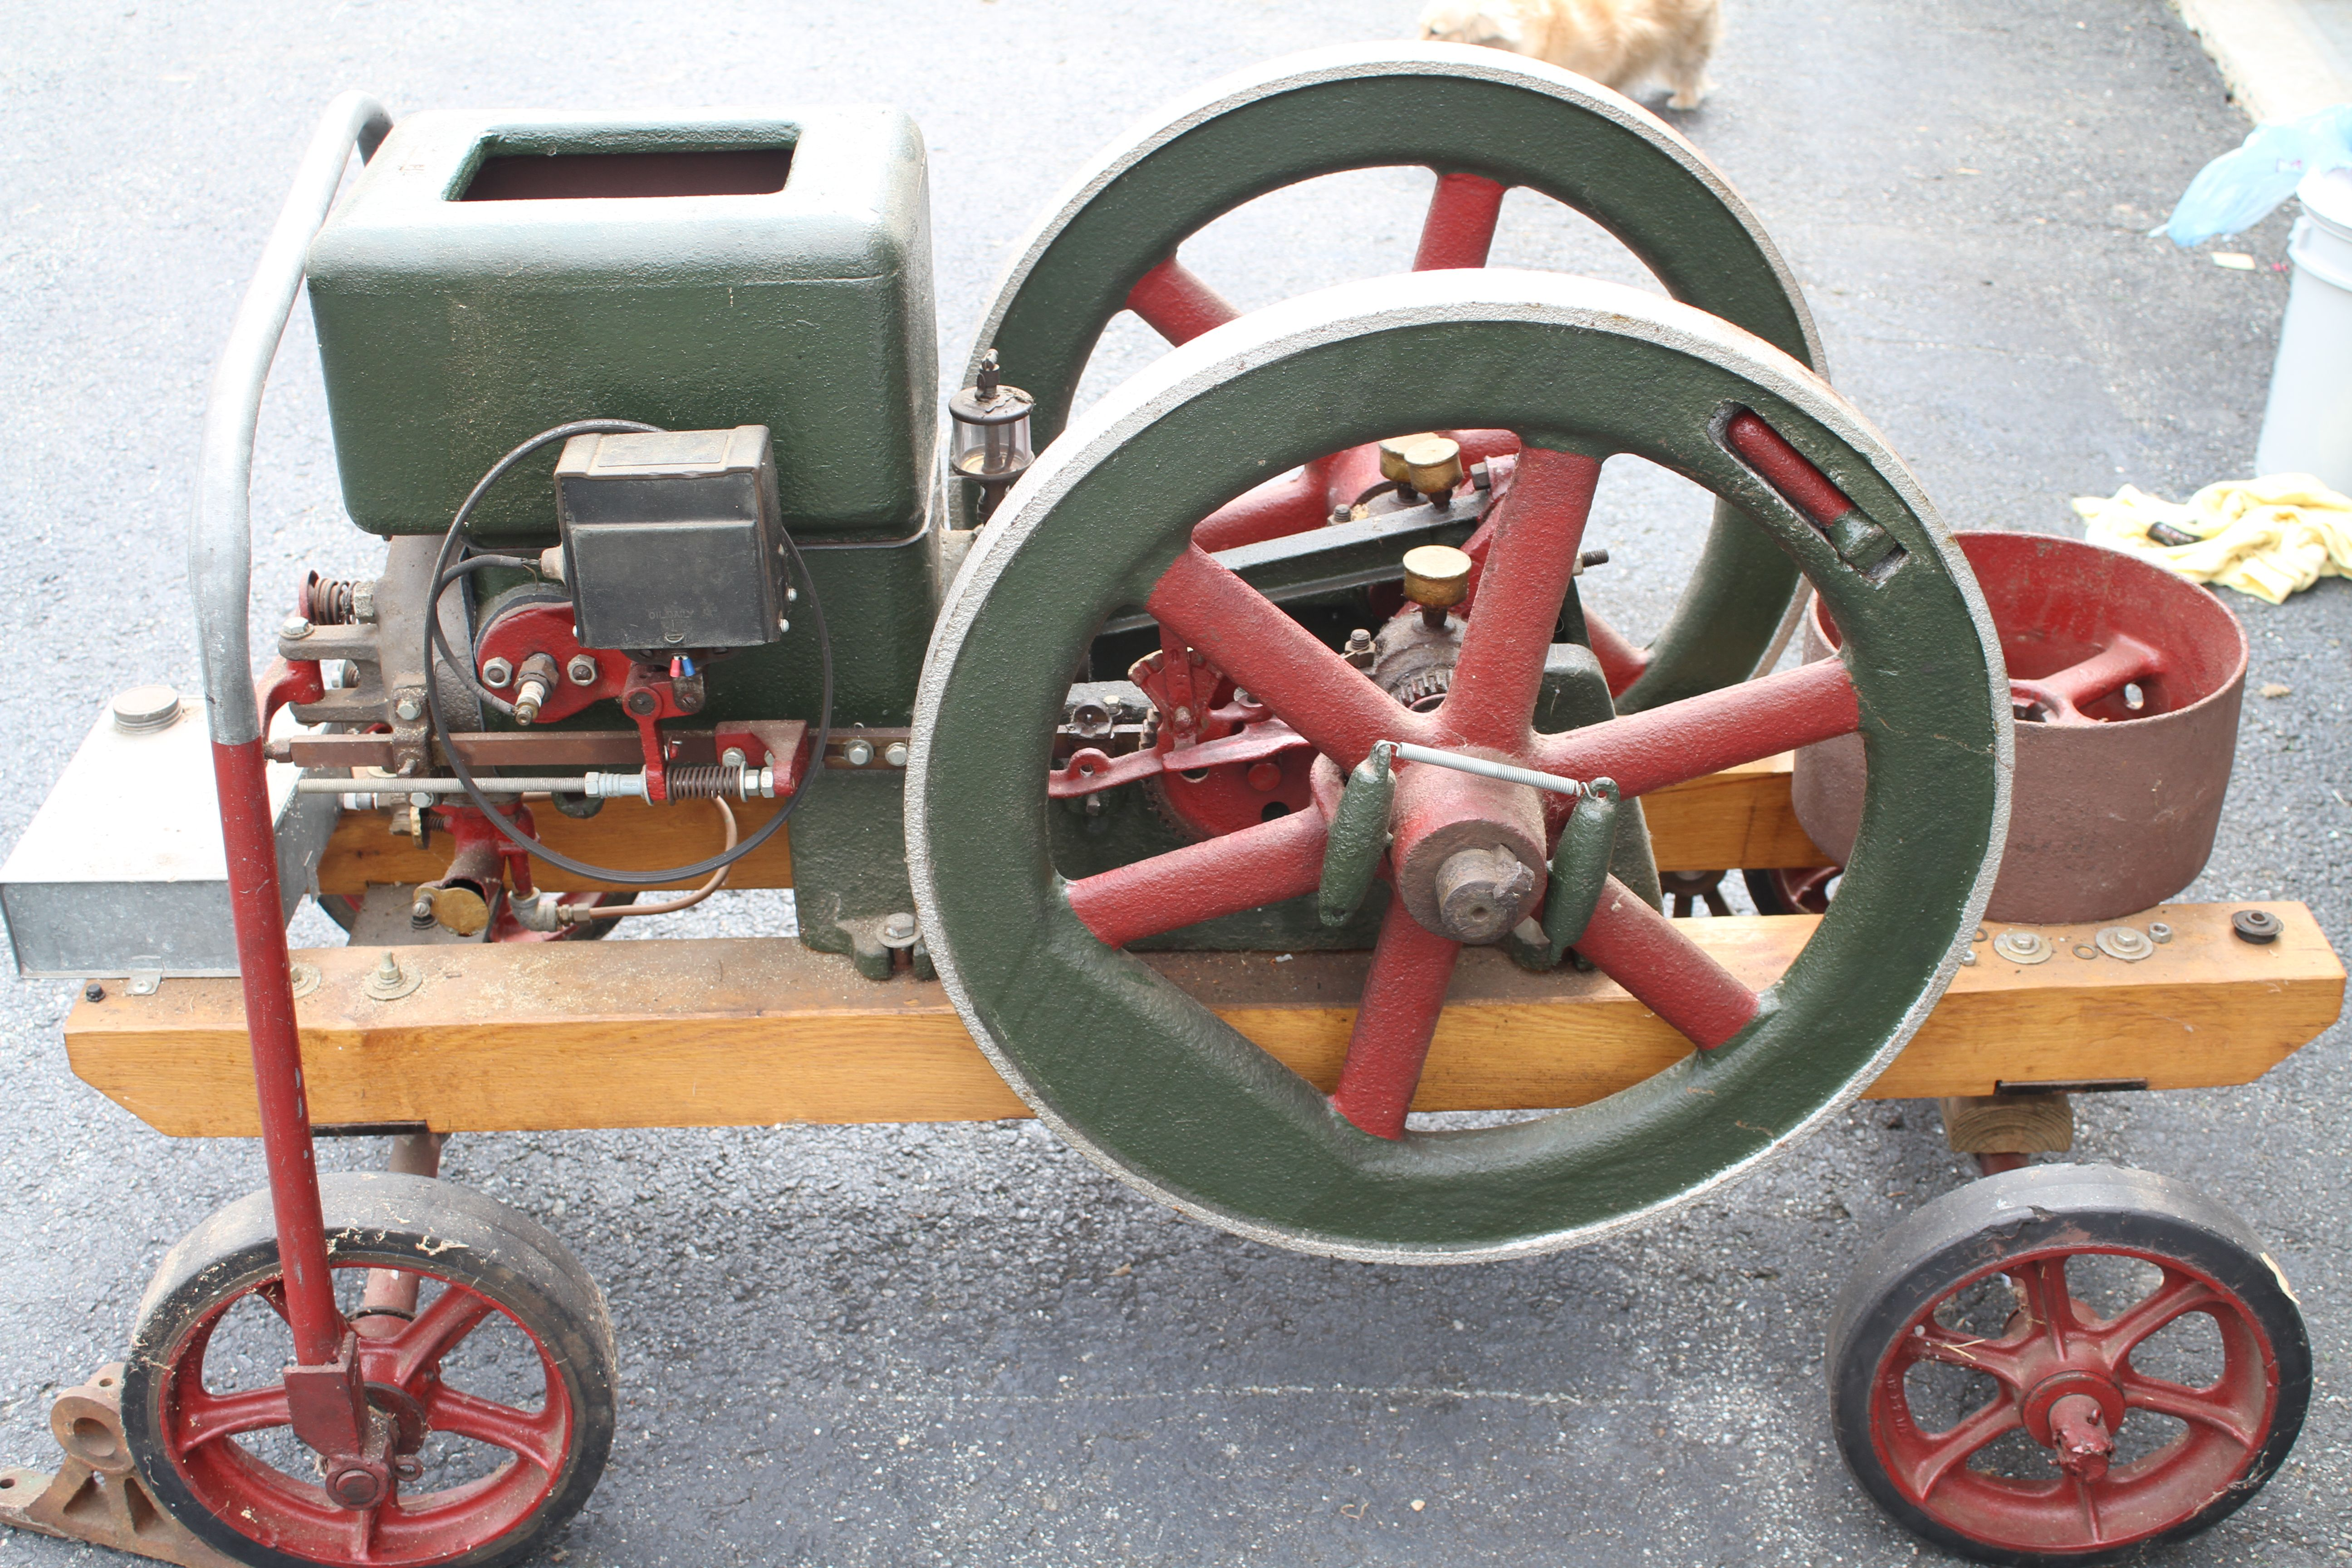 5hp Jumbo by nelson brothers Jumbo, Cannon, Brother